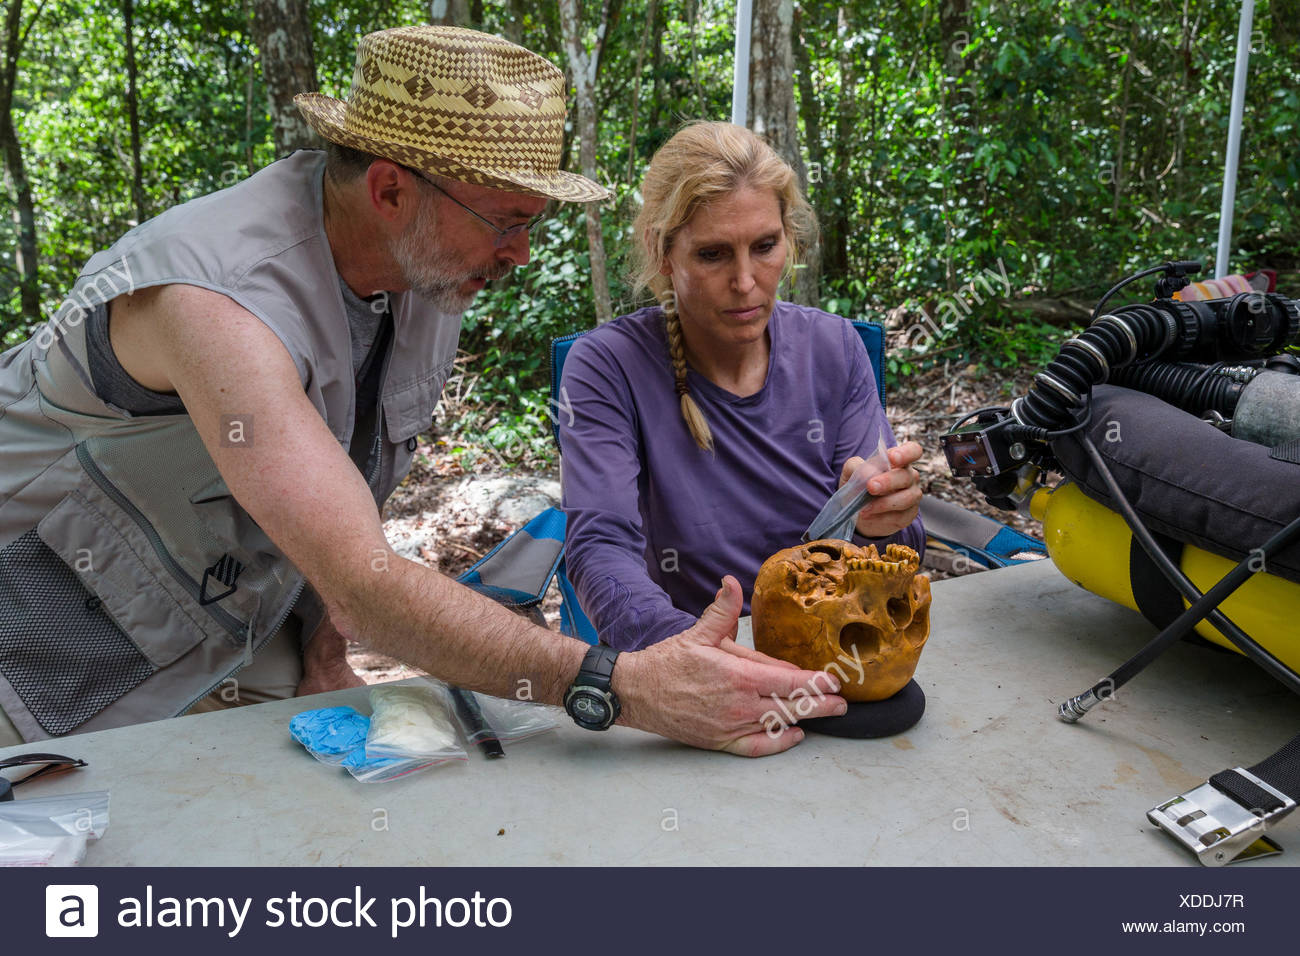 Team member and archeologist examine a replica of the skull of 'Naia,' a girl, who died between 12,000 and 13,000 years ago. - Stock Image